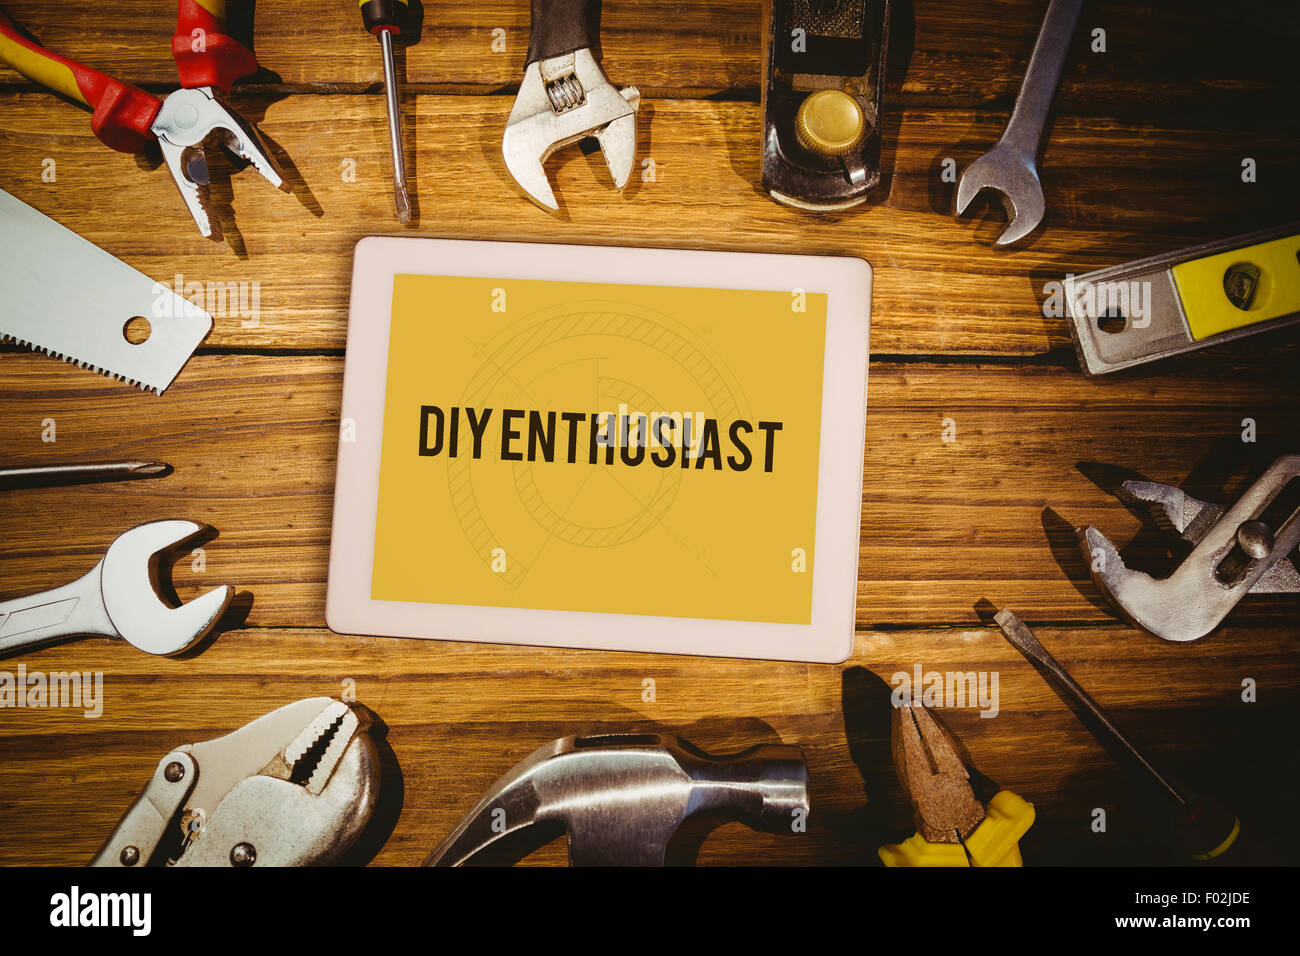 Diy enthusiast against blueprint - Stock Image